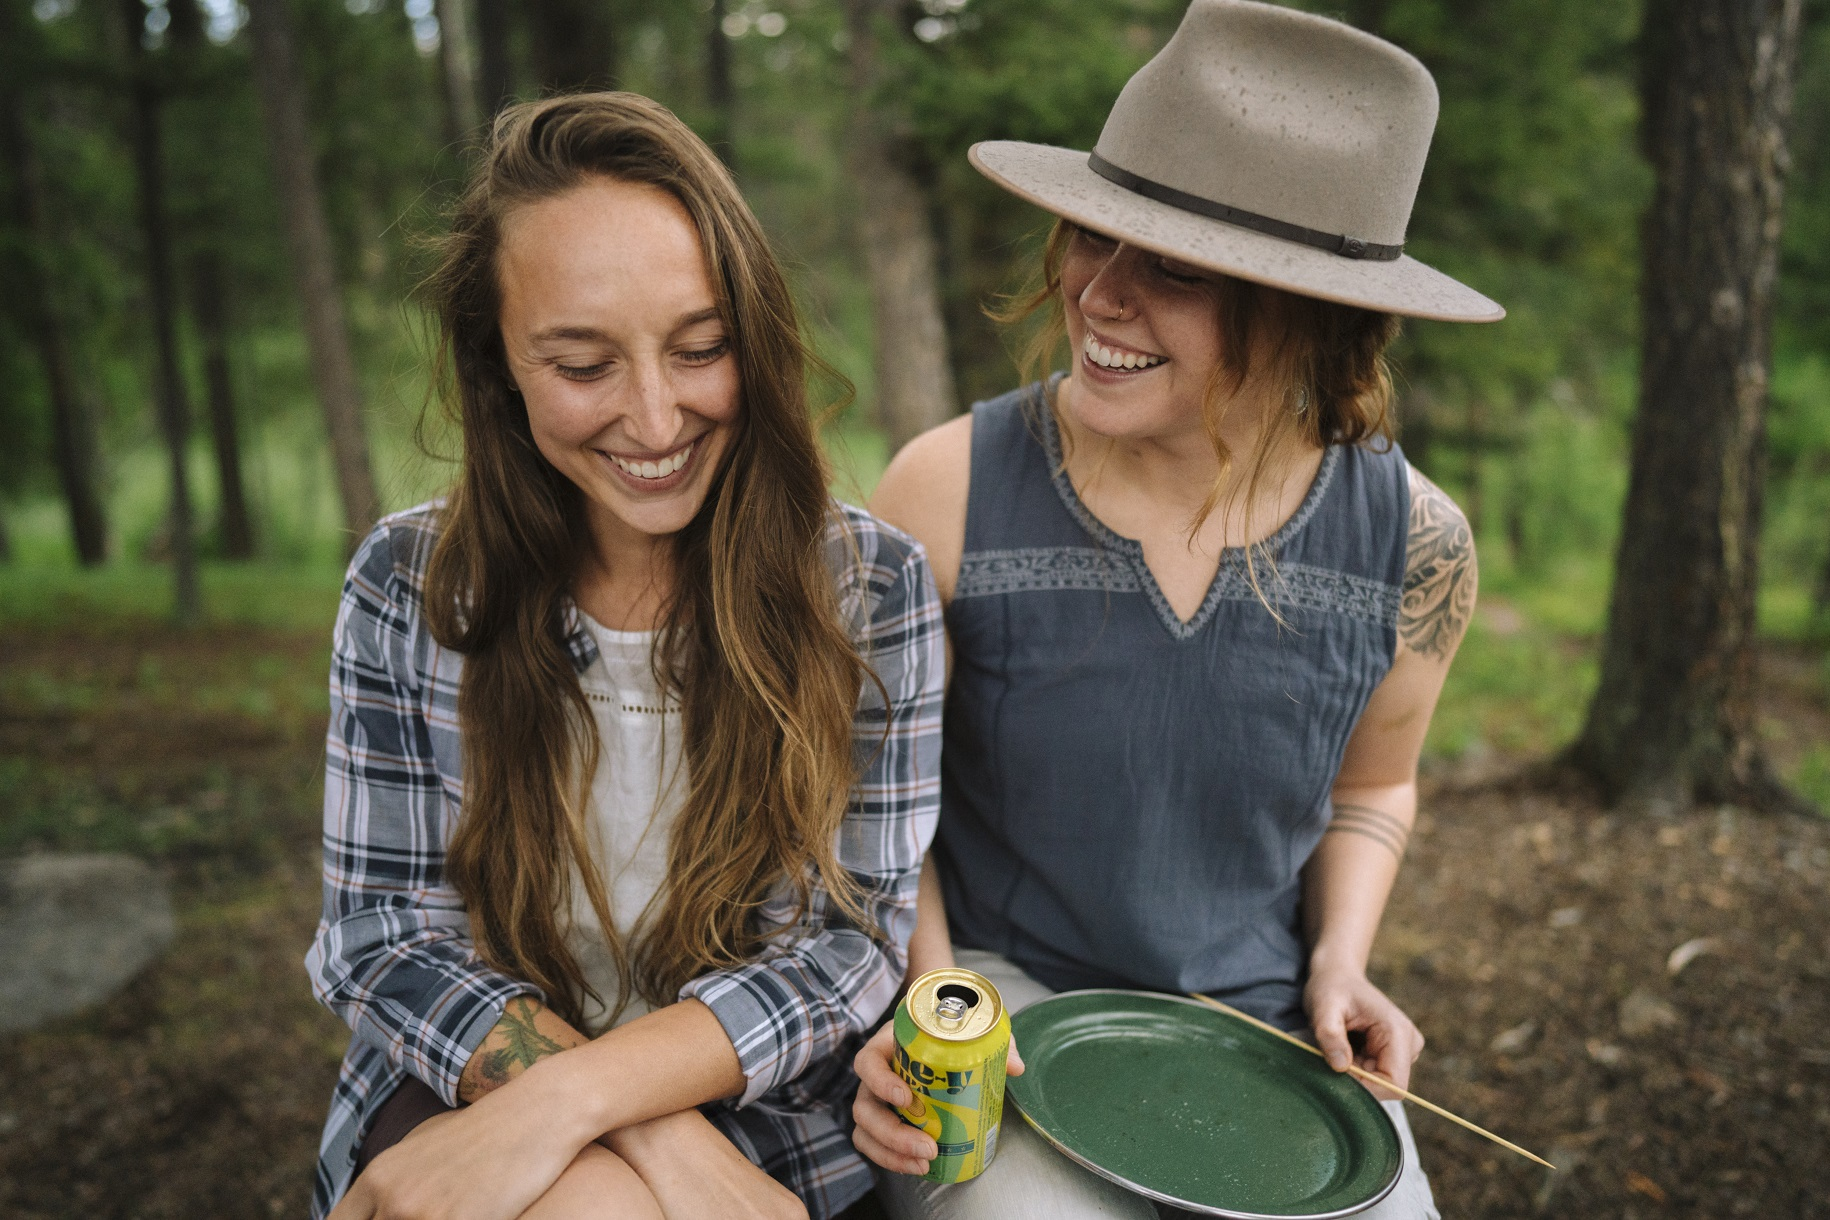 two women in KÜHL shirts smiling in the outdoors during daytime